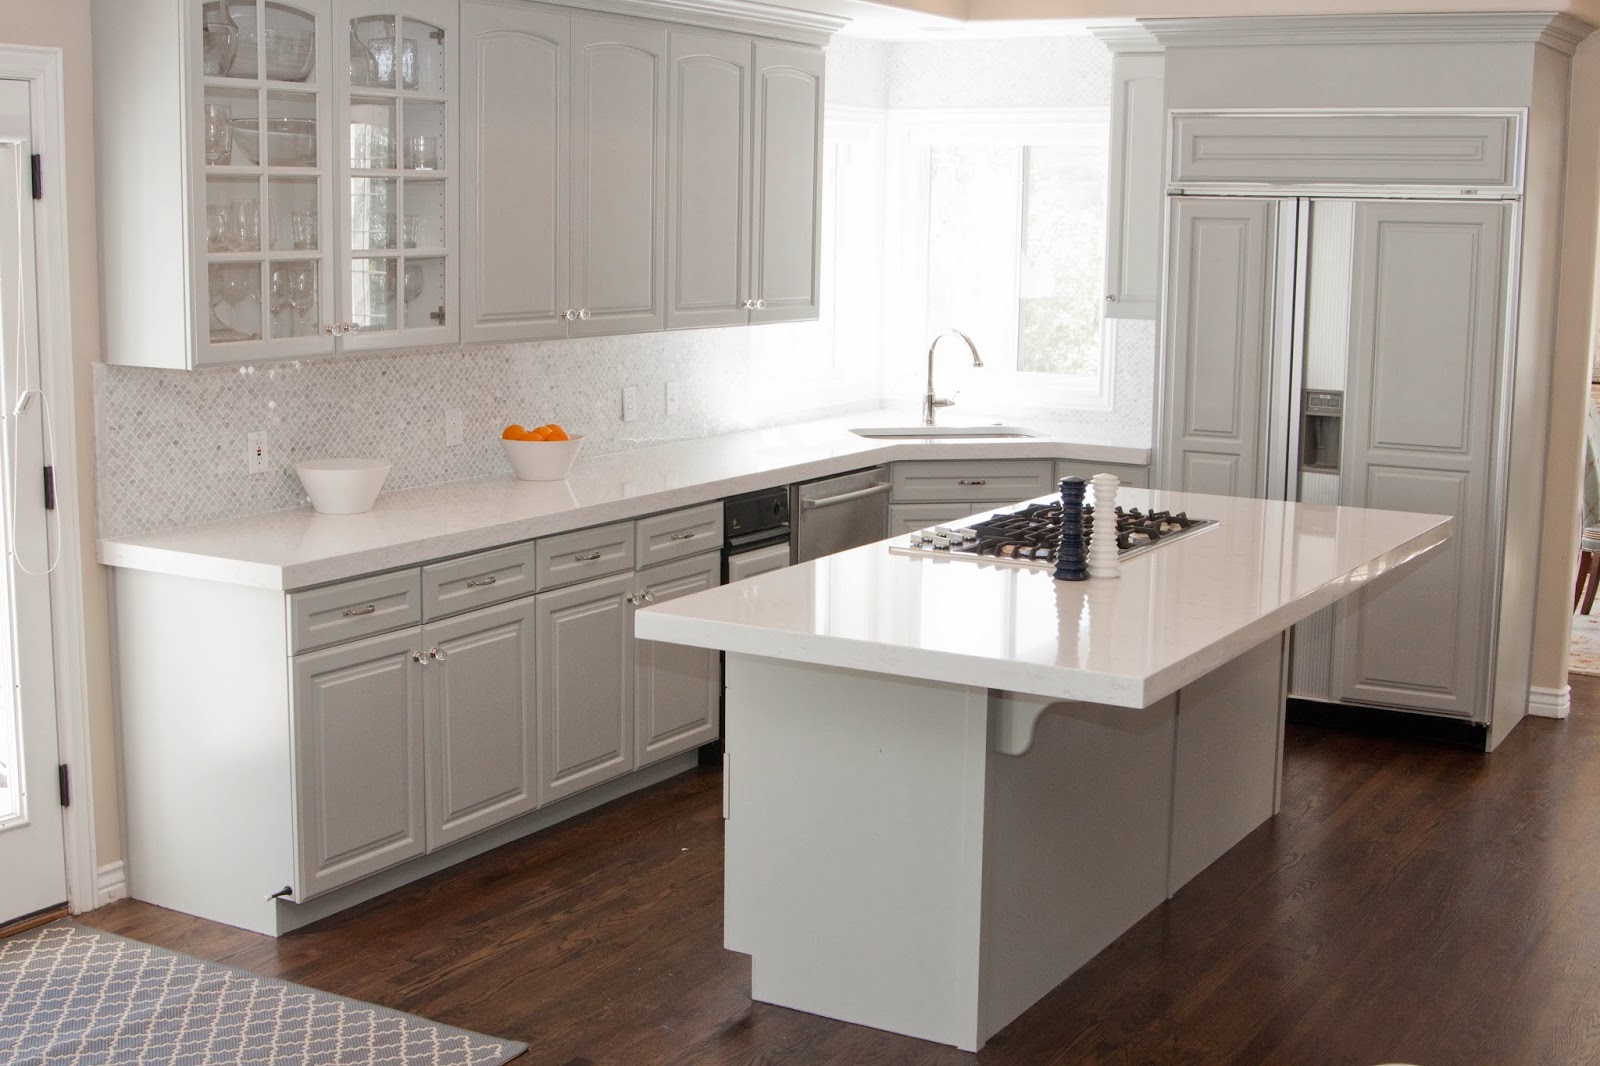 : Light Wood Floors Oak Cabinets Granite Countertop And Backsplash. Full resolution‎  img, nominally Width 1600 Height 1066 pixels, img with #BA5C11.